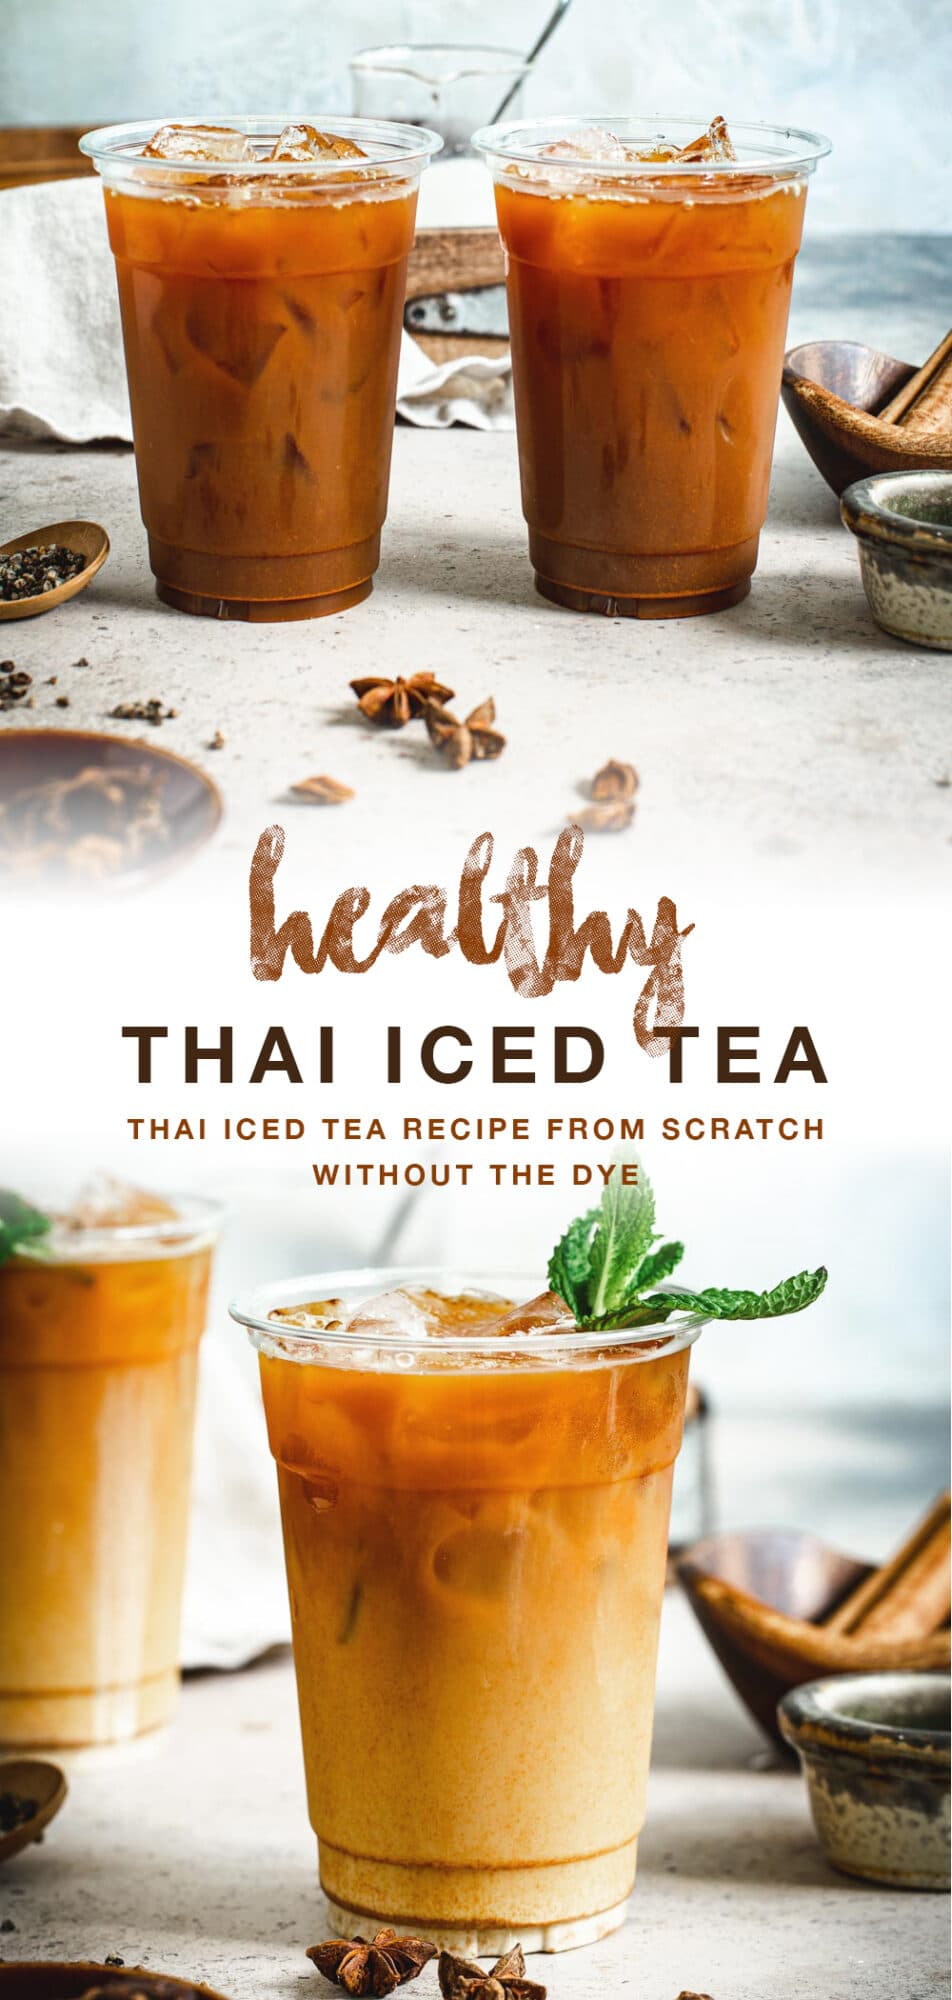 Thai tea double image with brown title